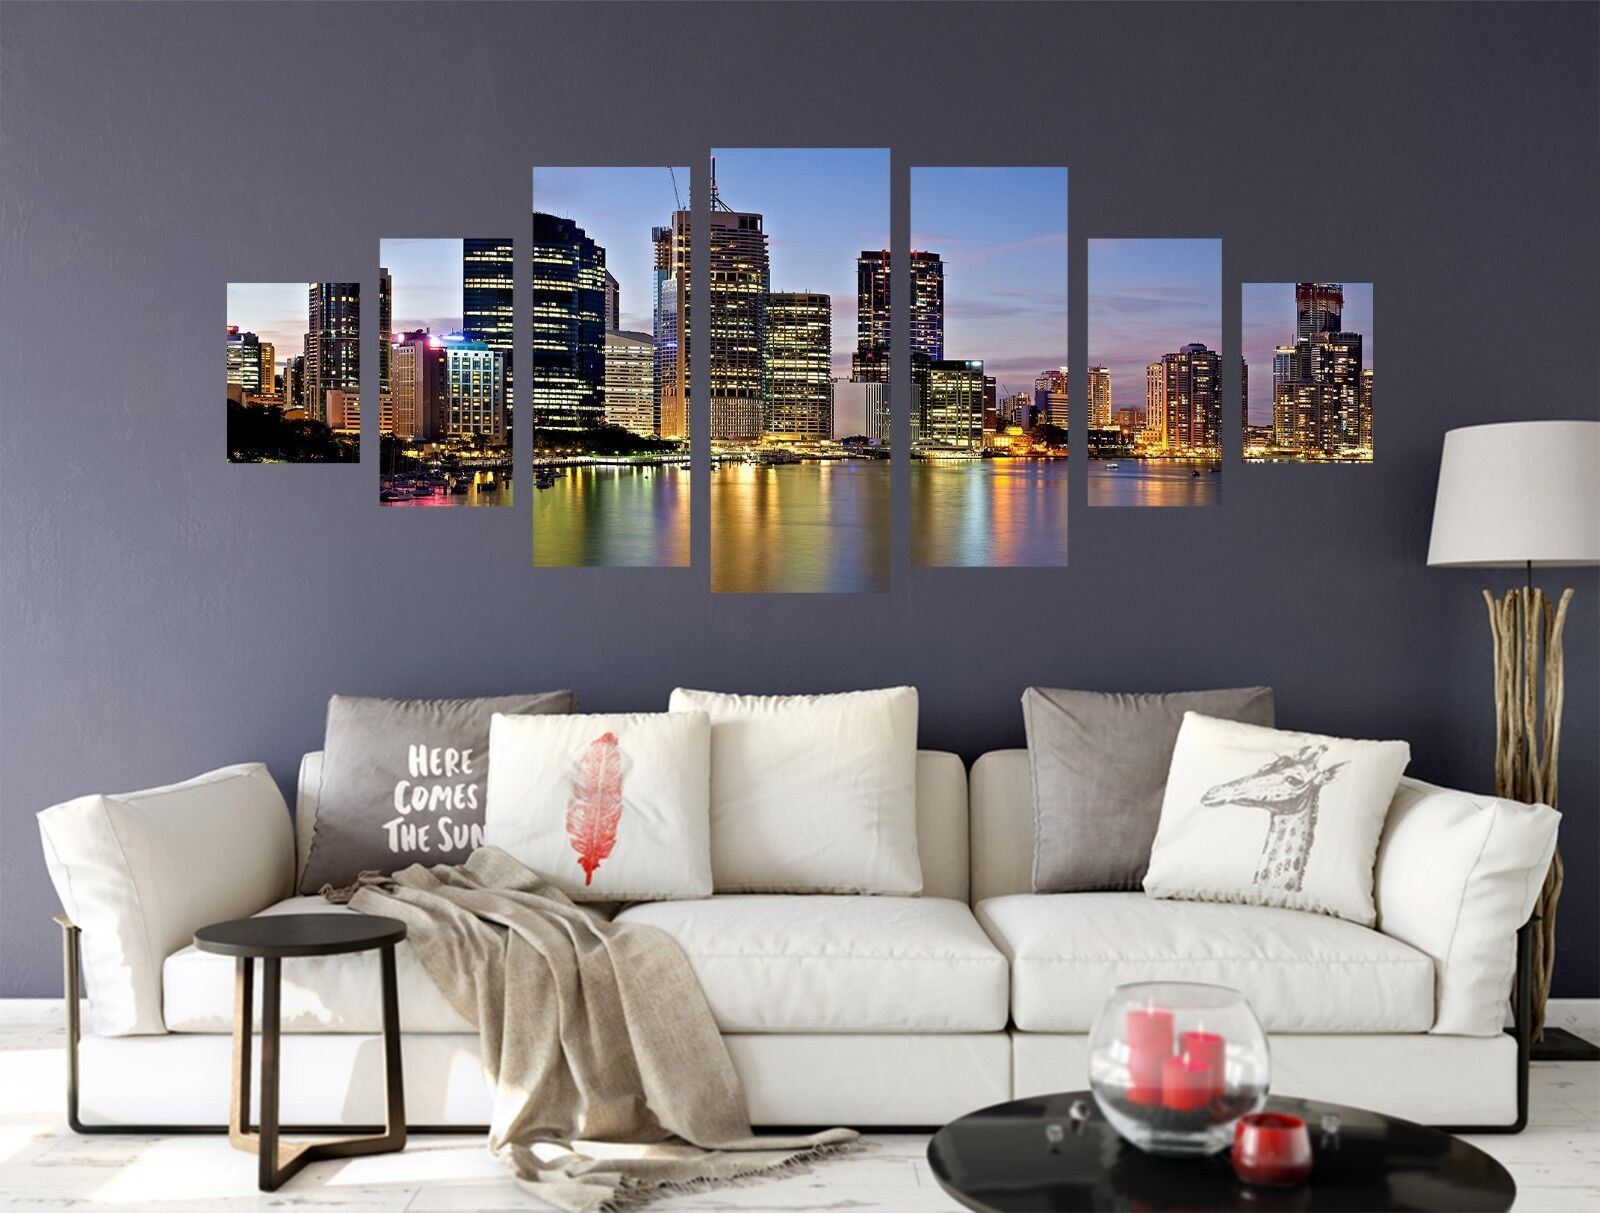 3D Night View City 58 Unframed Print Wall Paper Decal Wall Deco Indoor AJ Wall